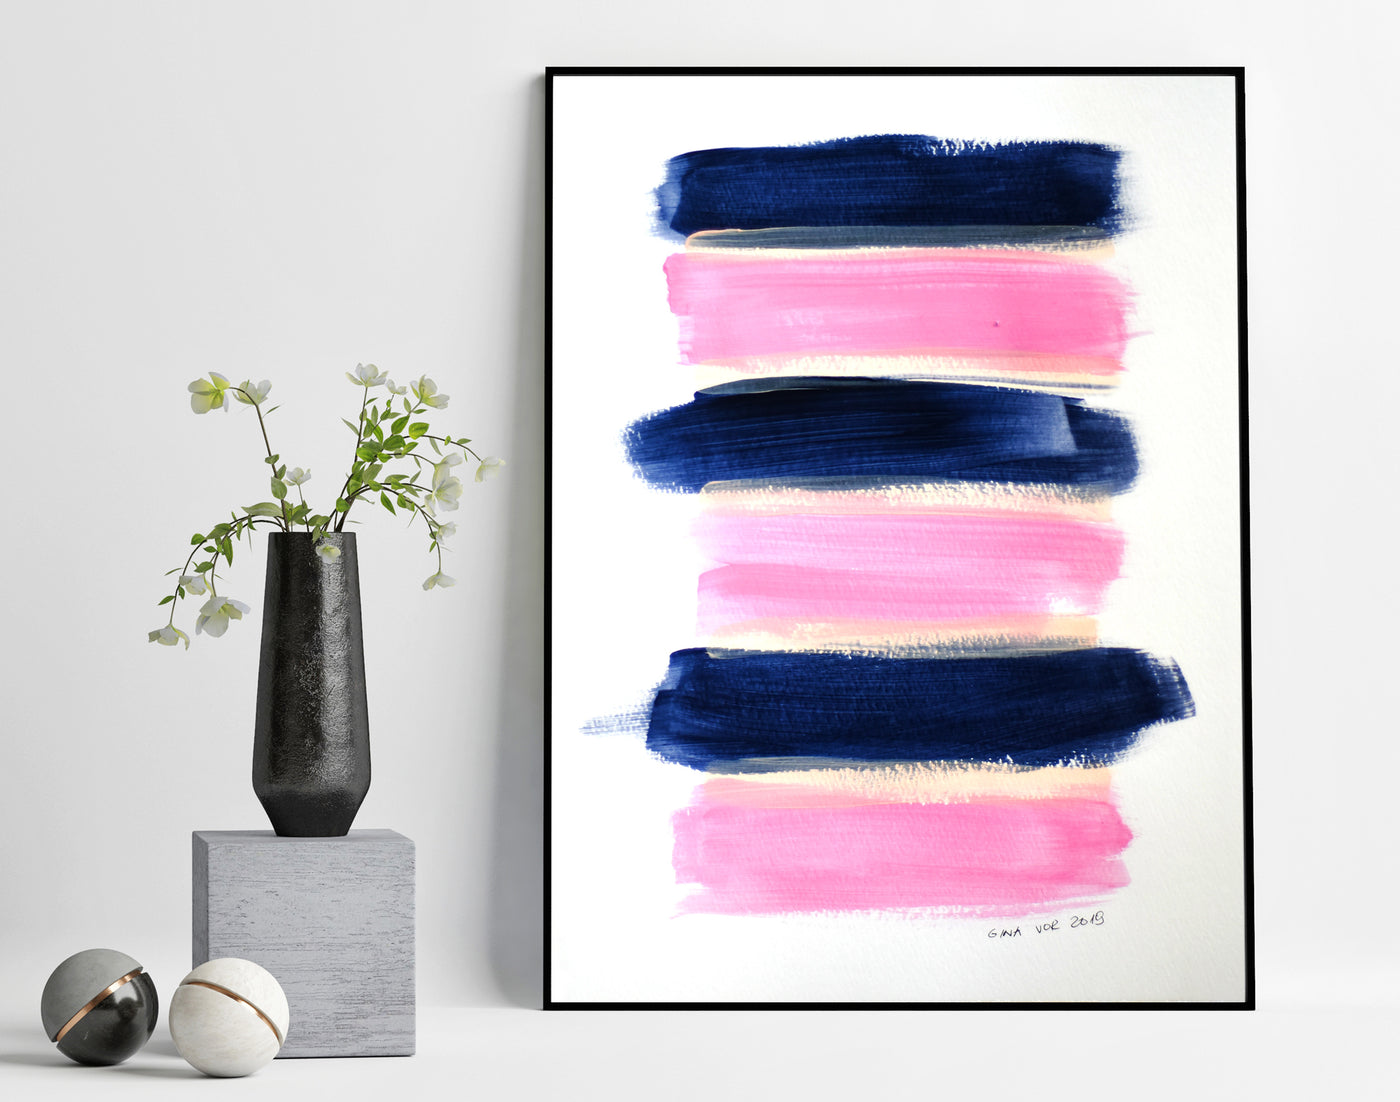 Minimalist art painting in blush pink and navy blue